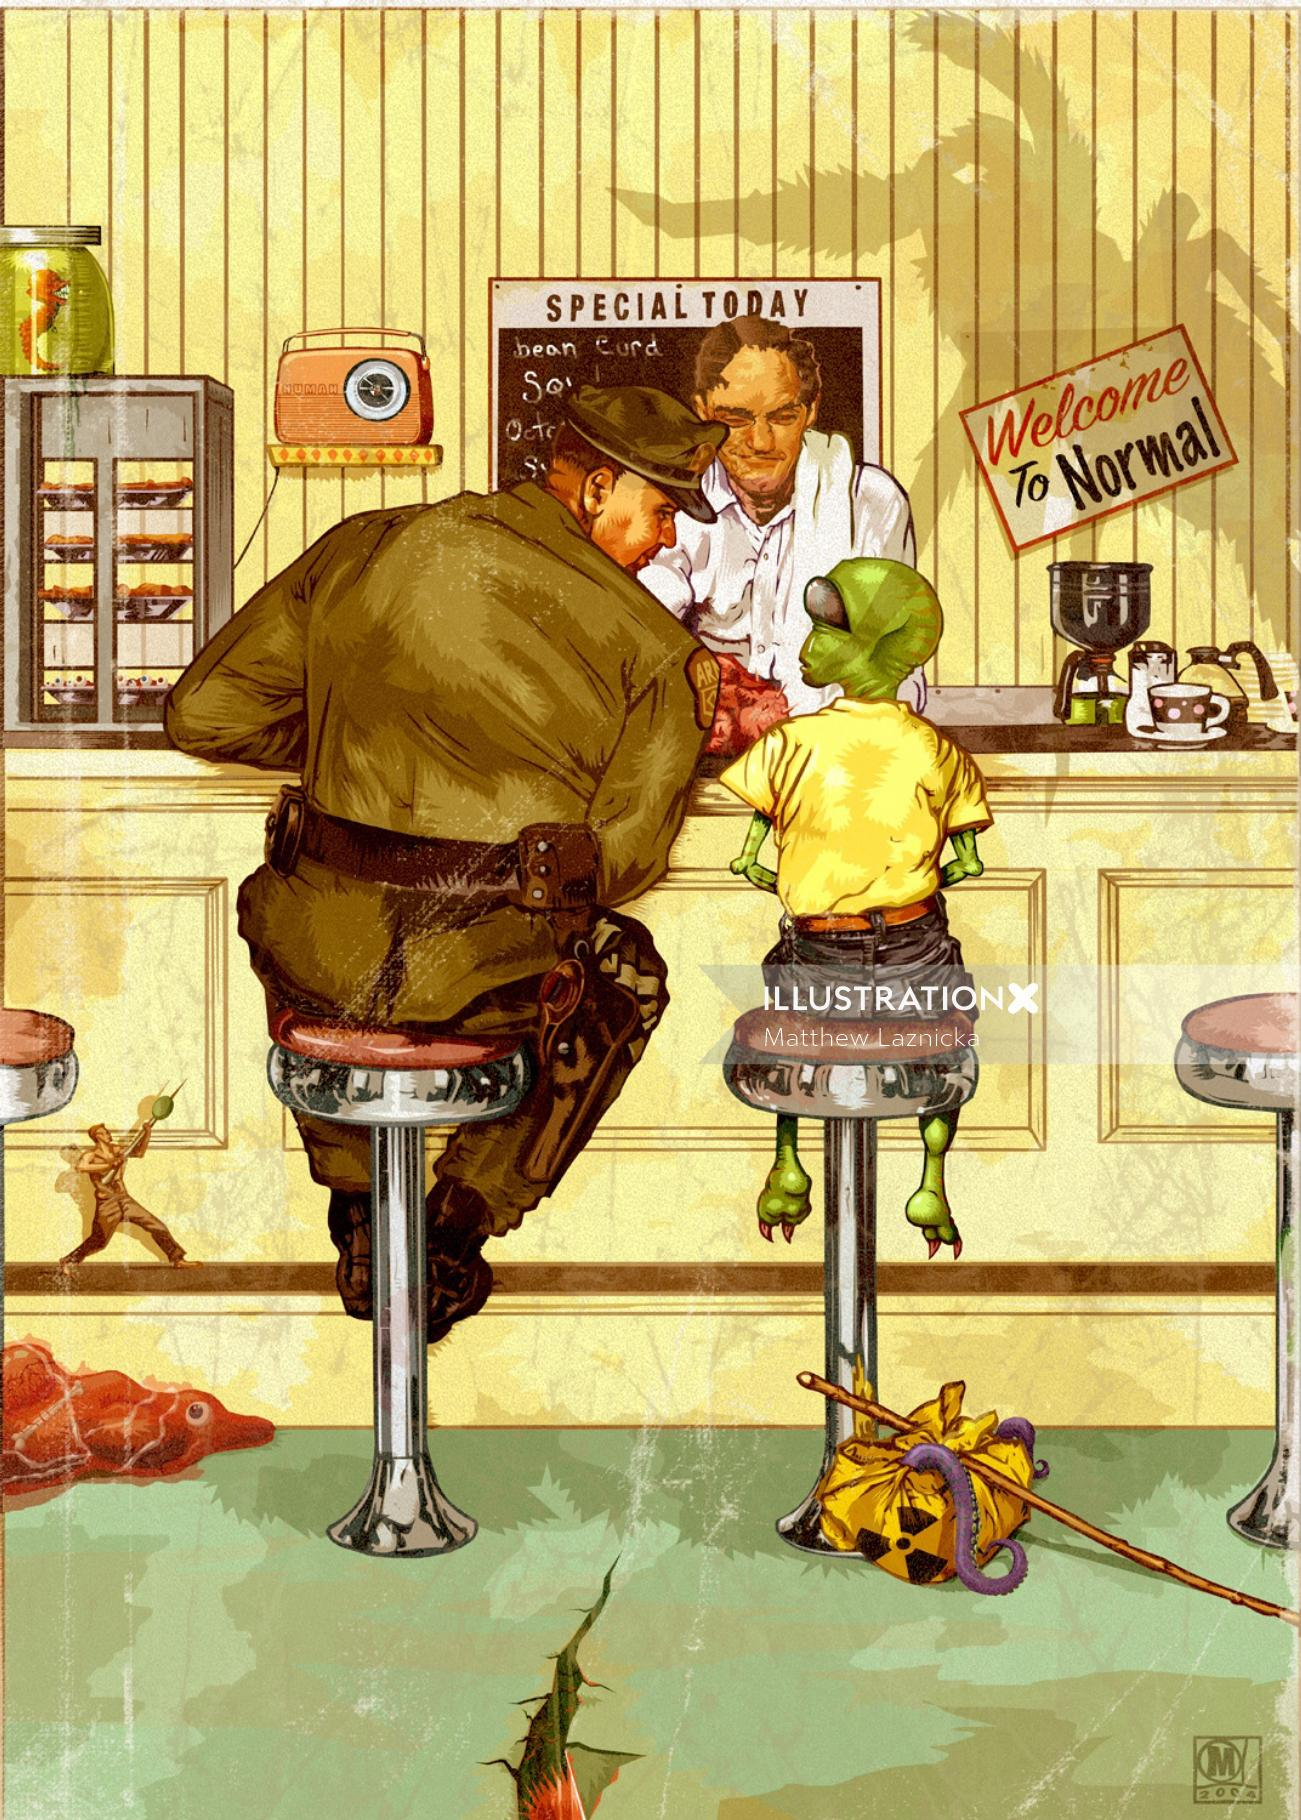 Illustration of rockwell spoof